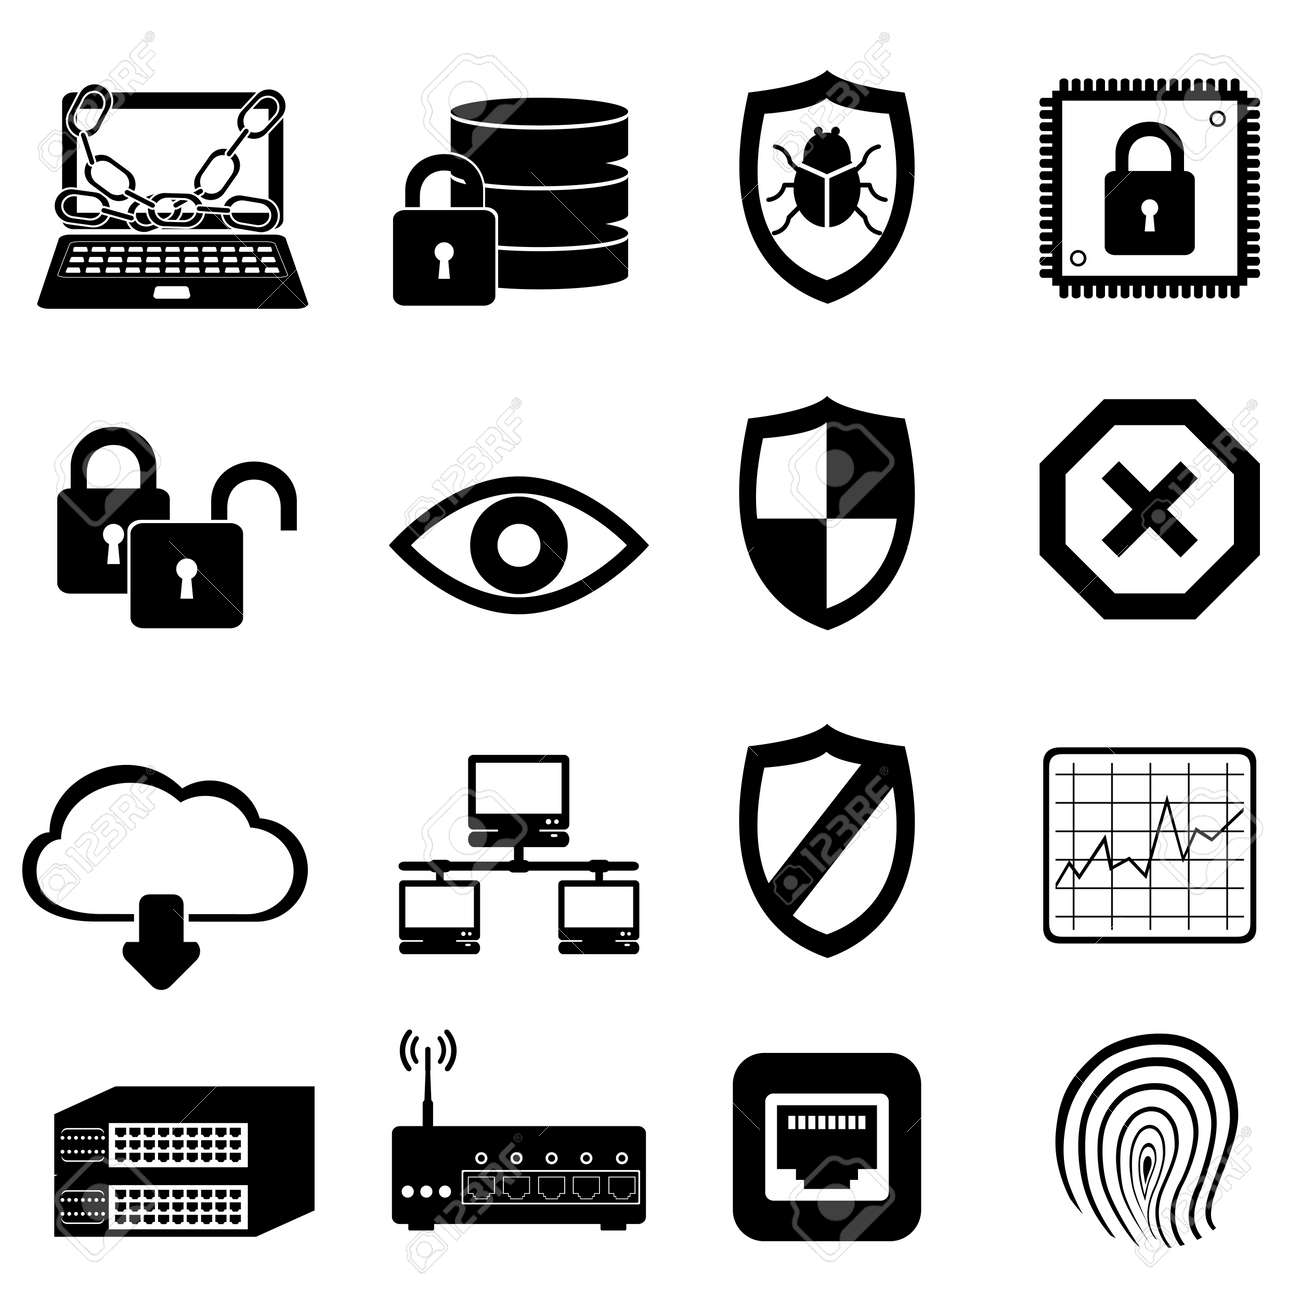 Network and computer security icon set - 15126300